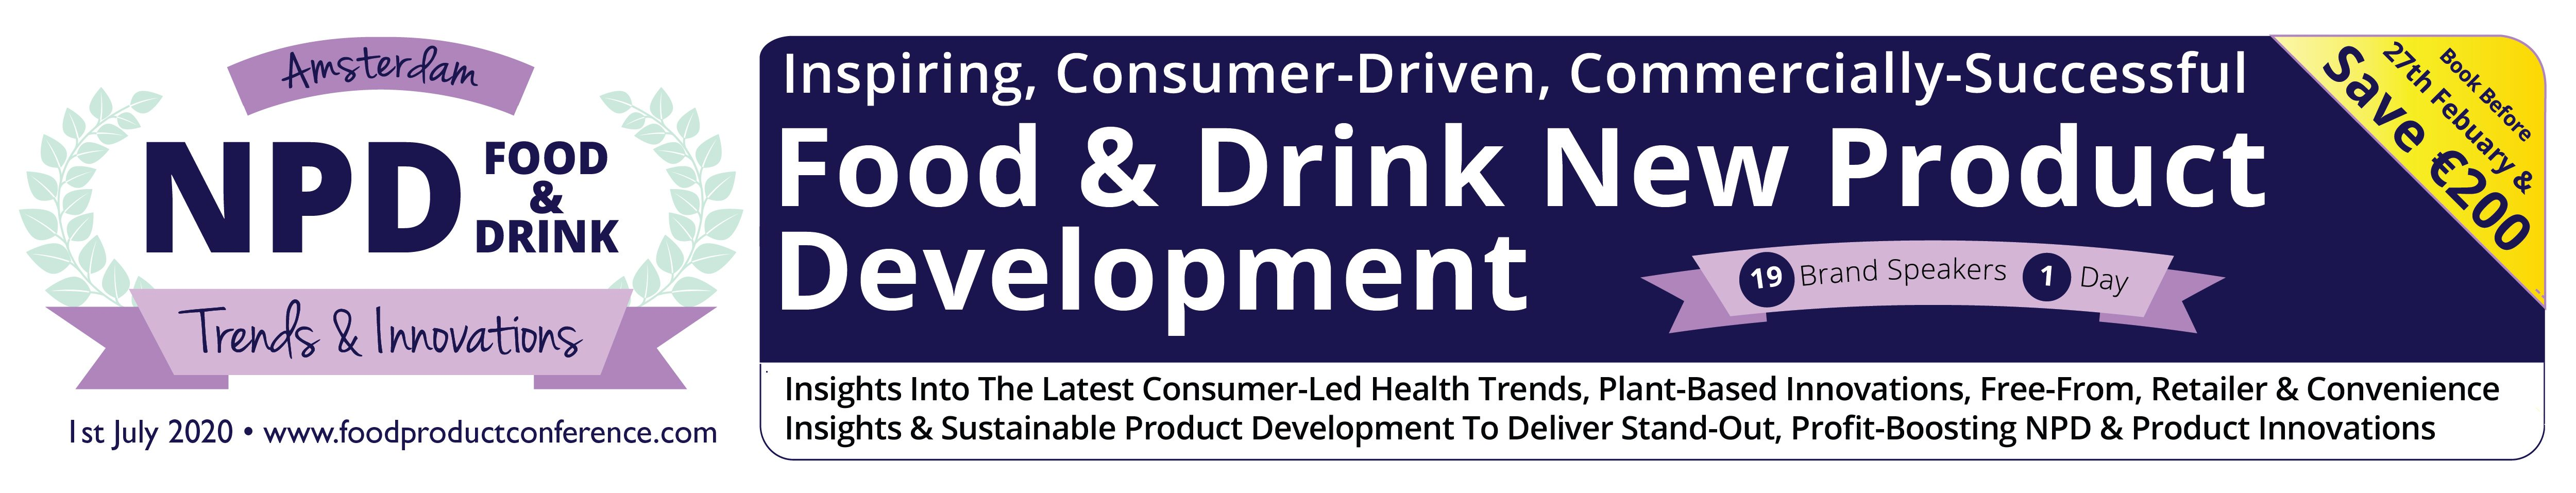 NPD Food & Drink Conference